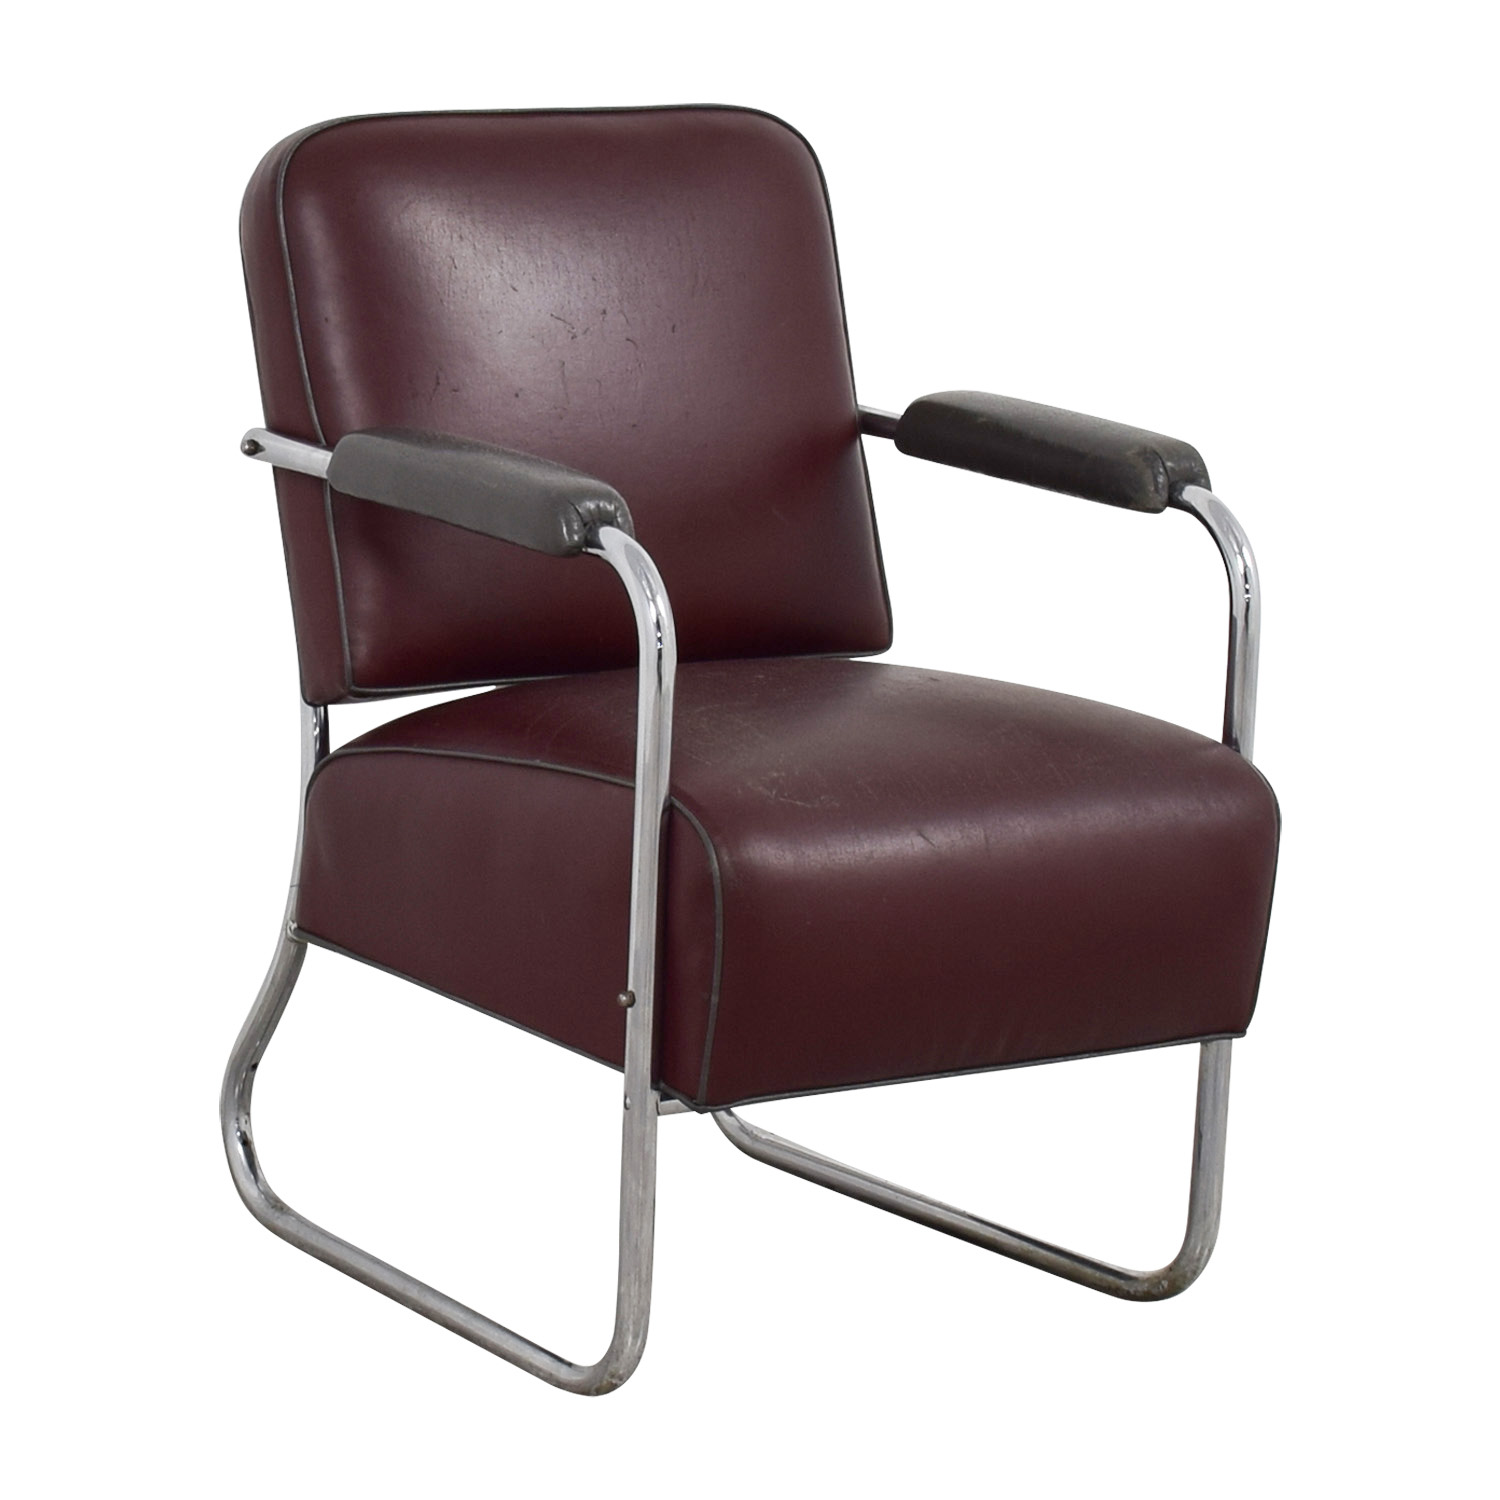 84 OFF  Vintage Art Deco Leather Chair  Chairs